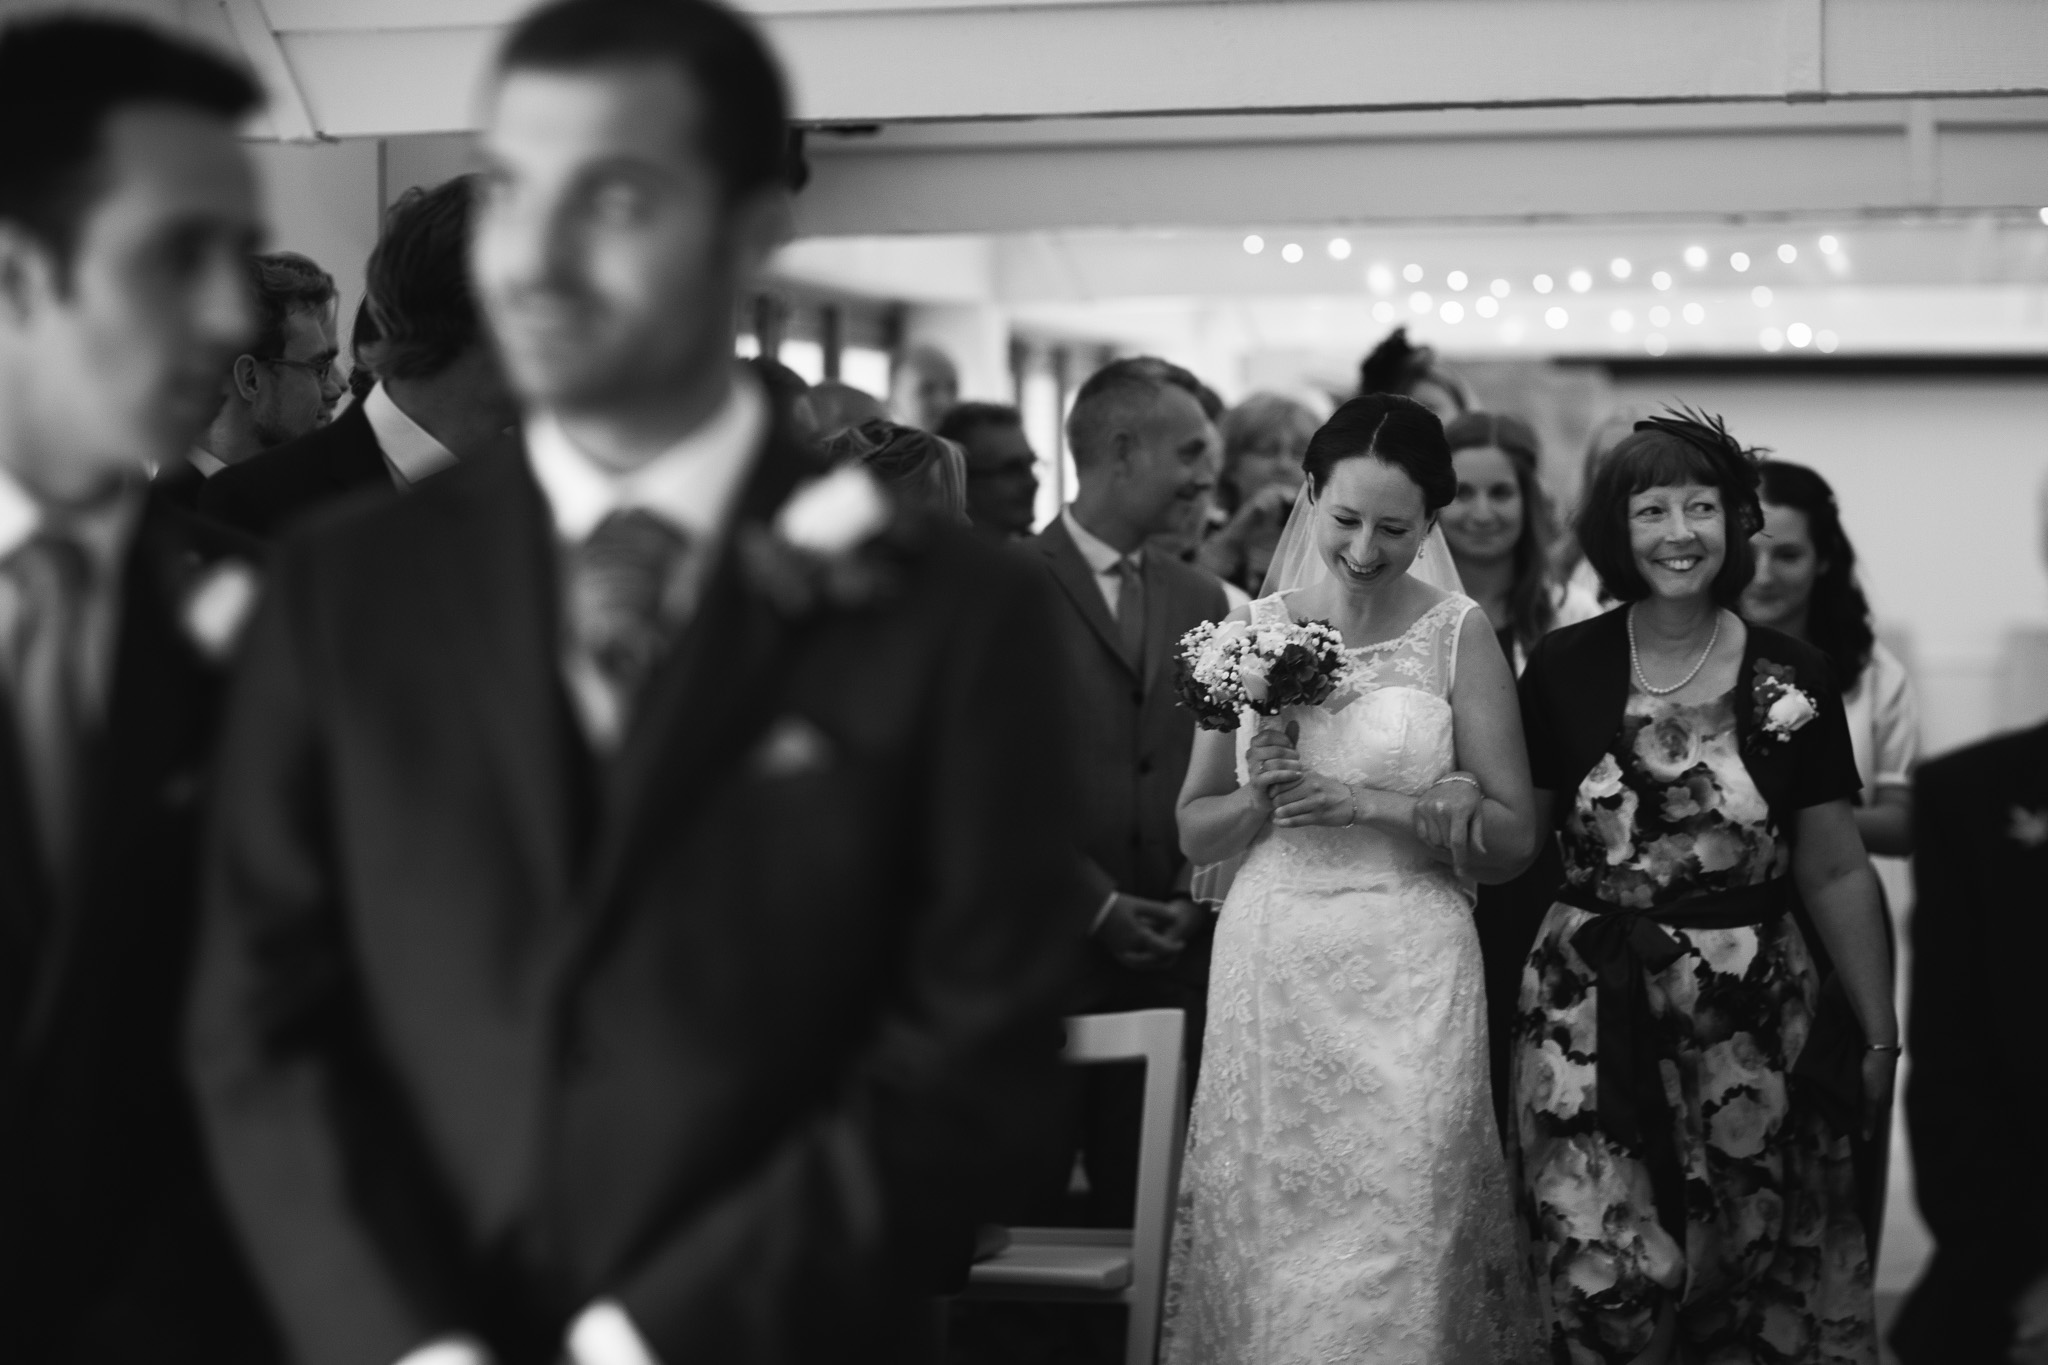 Mark_Barnes_Northern_Ireland_Wedding_Photography_Jack_and_Claire-16.jpg